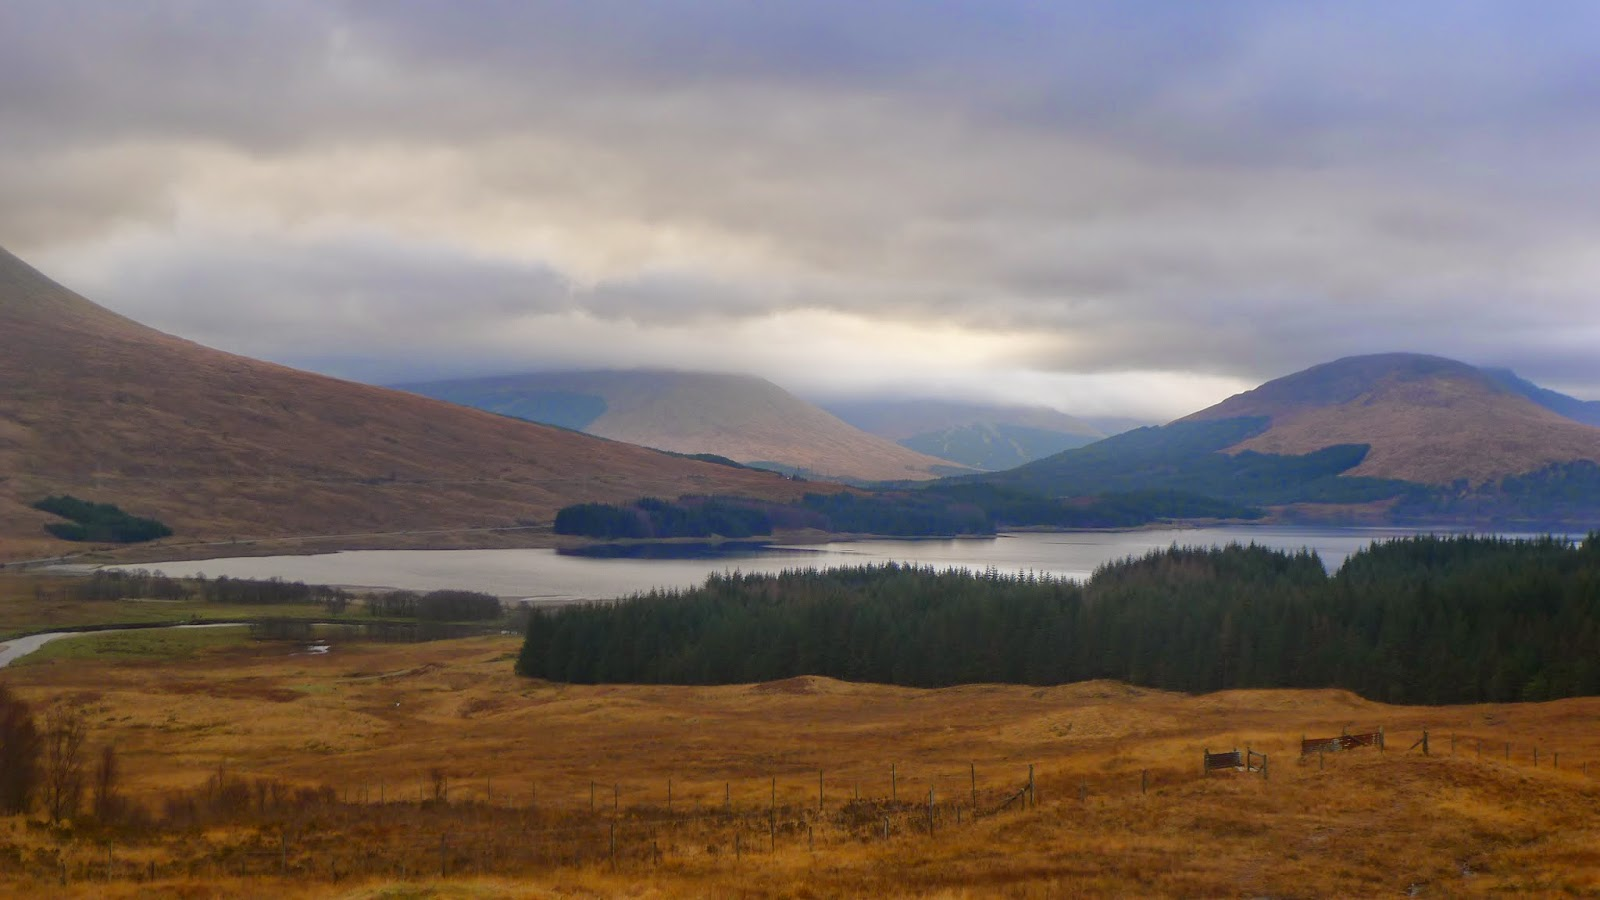 Loch Tulla, Argyll and Bute, 29 November 2014